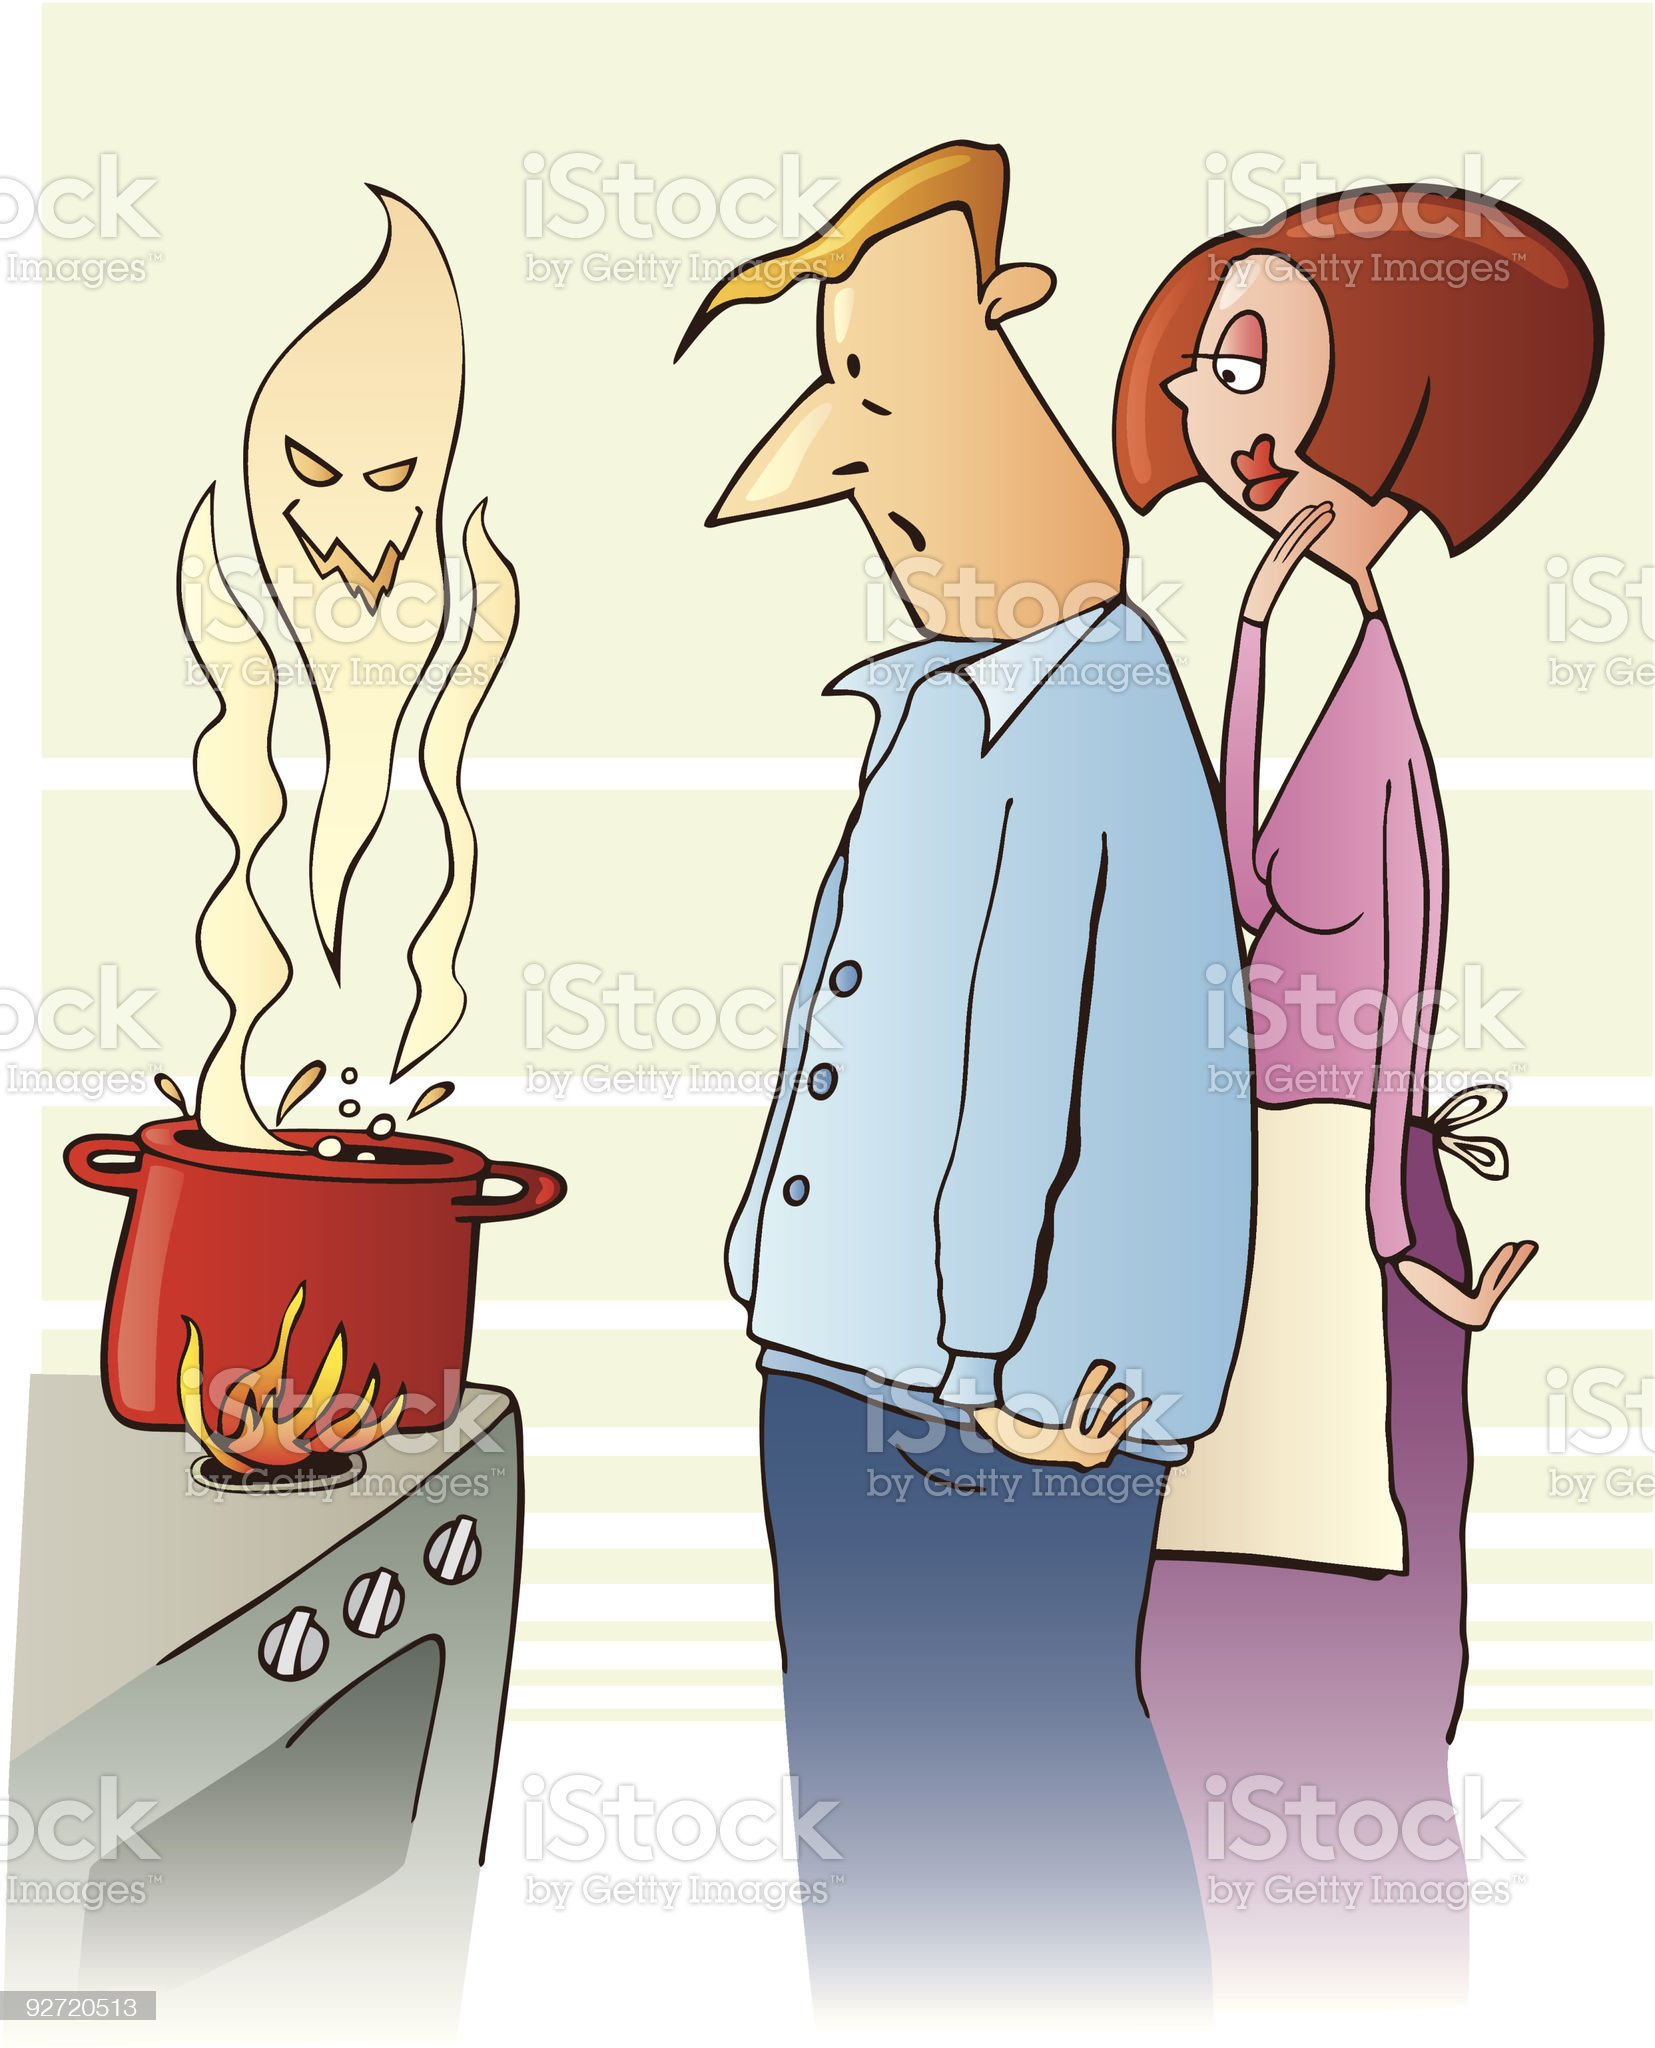 Couple cooking toxic soup royalty-free stock vector art